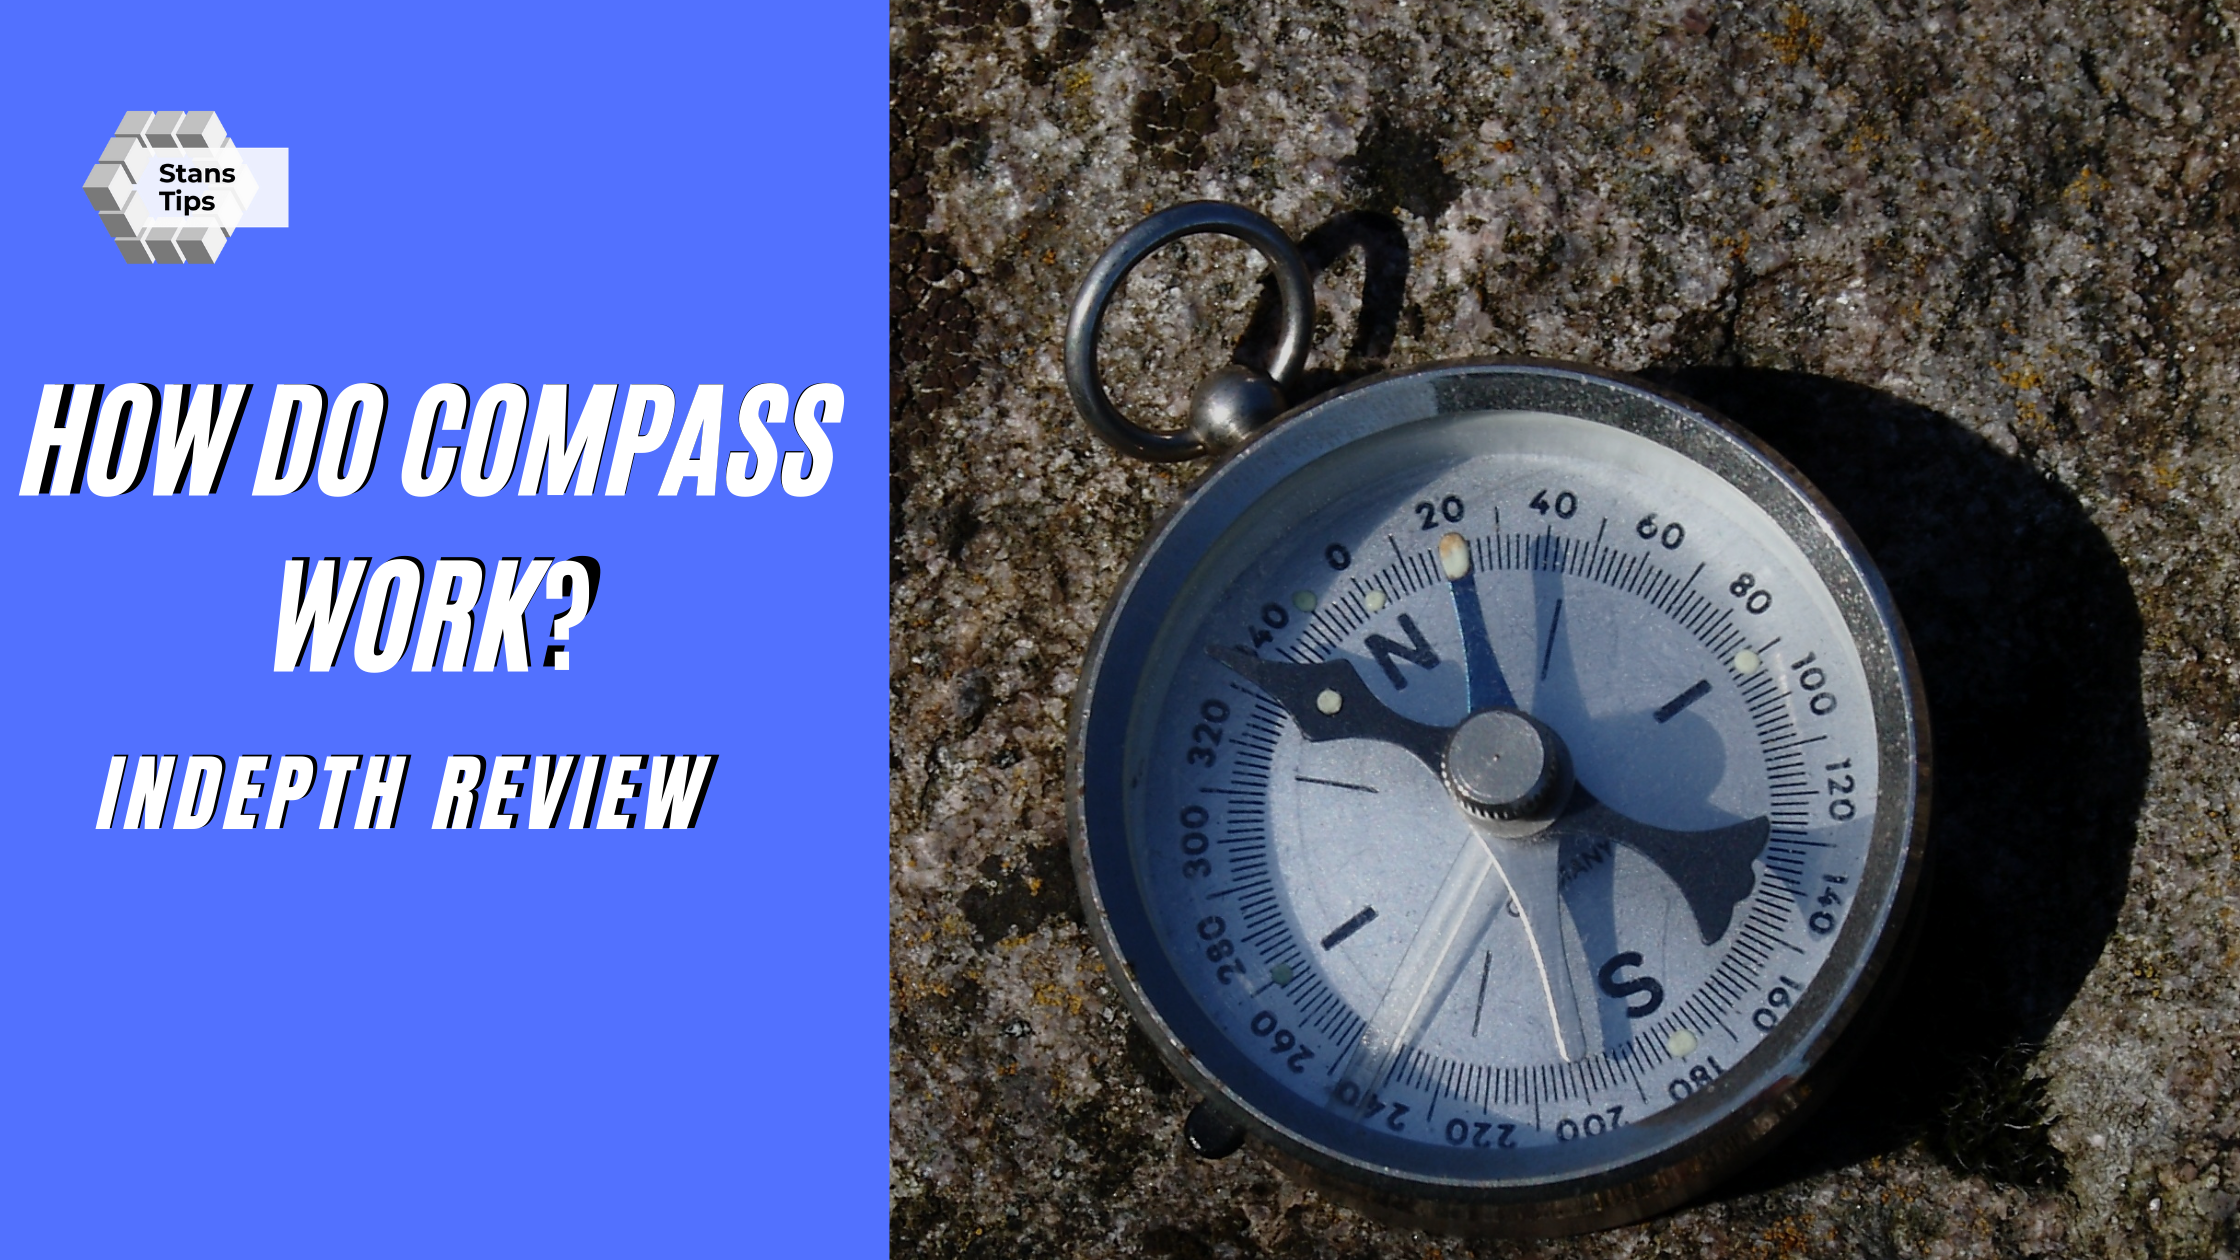 How does compass work